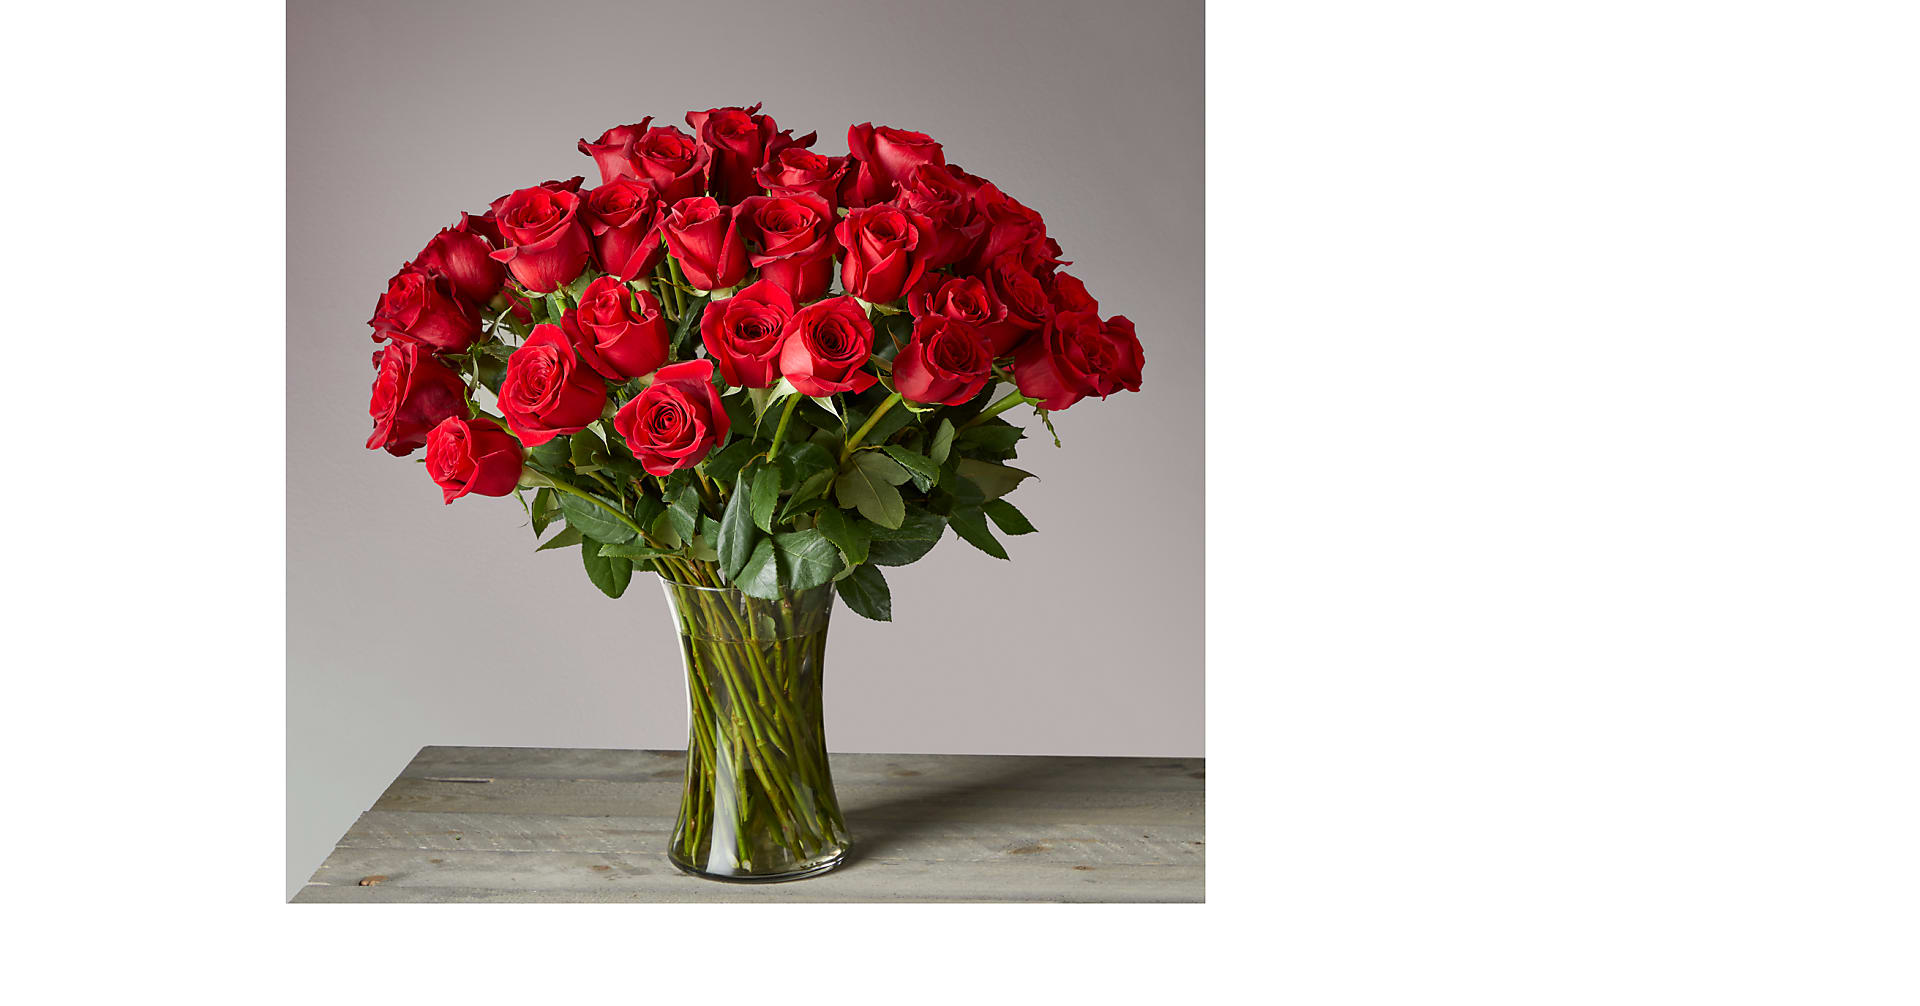 Fifty Long Stem Red Roses of Romance - Image 1 Of 2